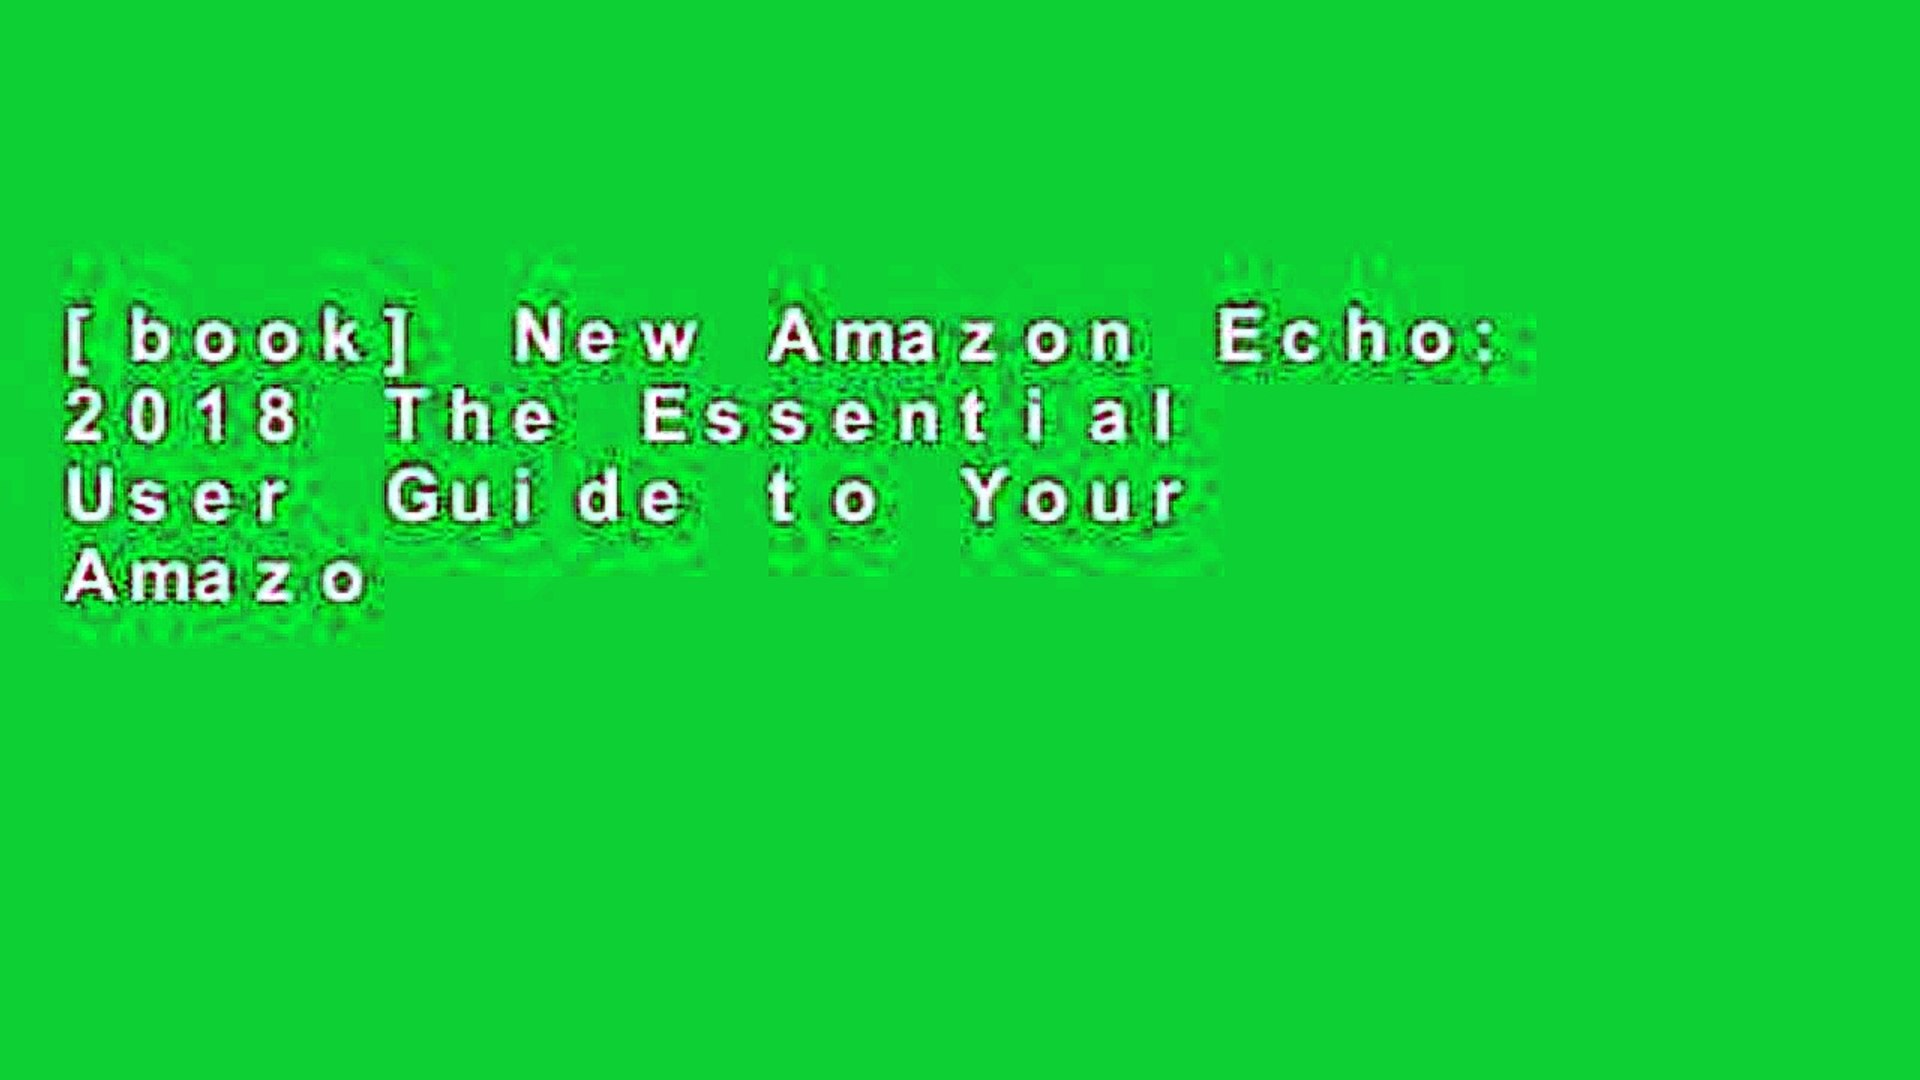 [book] New Amazon Echo: 2018 The Essential User Guide to Your Amazon Echo with Tips and Tricks: